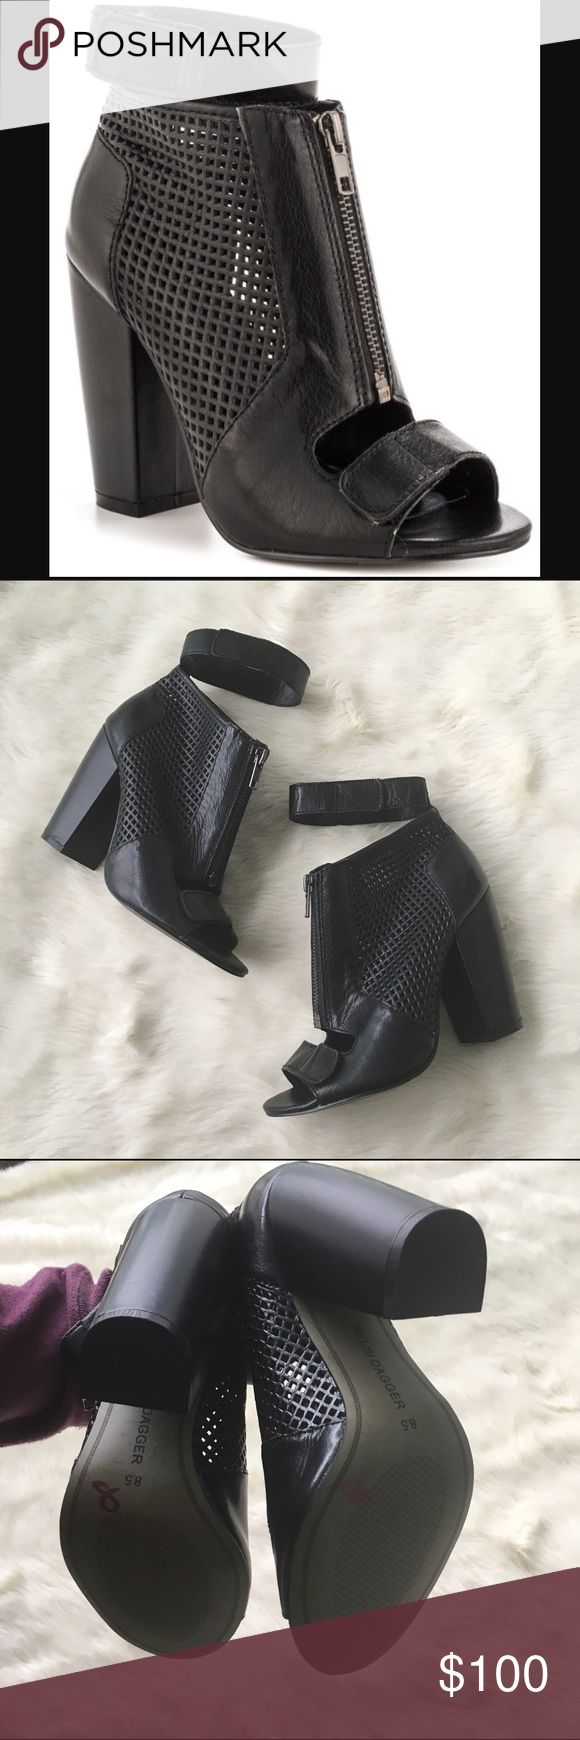 "Kelsi Dagger Betta Peep toe bootie Sz 8.5 Betta peep toe bootie. Excellent like new condition. If you are between 8-8.5 I believe these will work. I'm an 8 and considering keeping😩 heel approx 4"" Kelsi Dagger Shoes Ankle Boots & Booties"